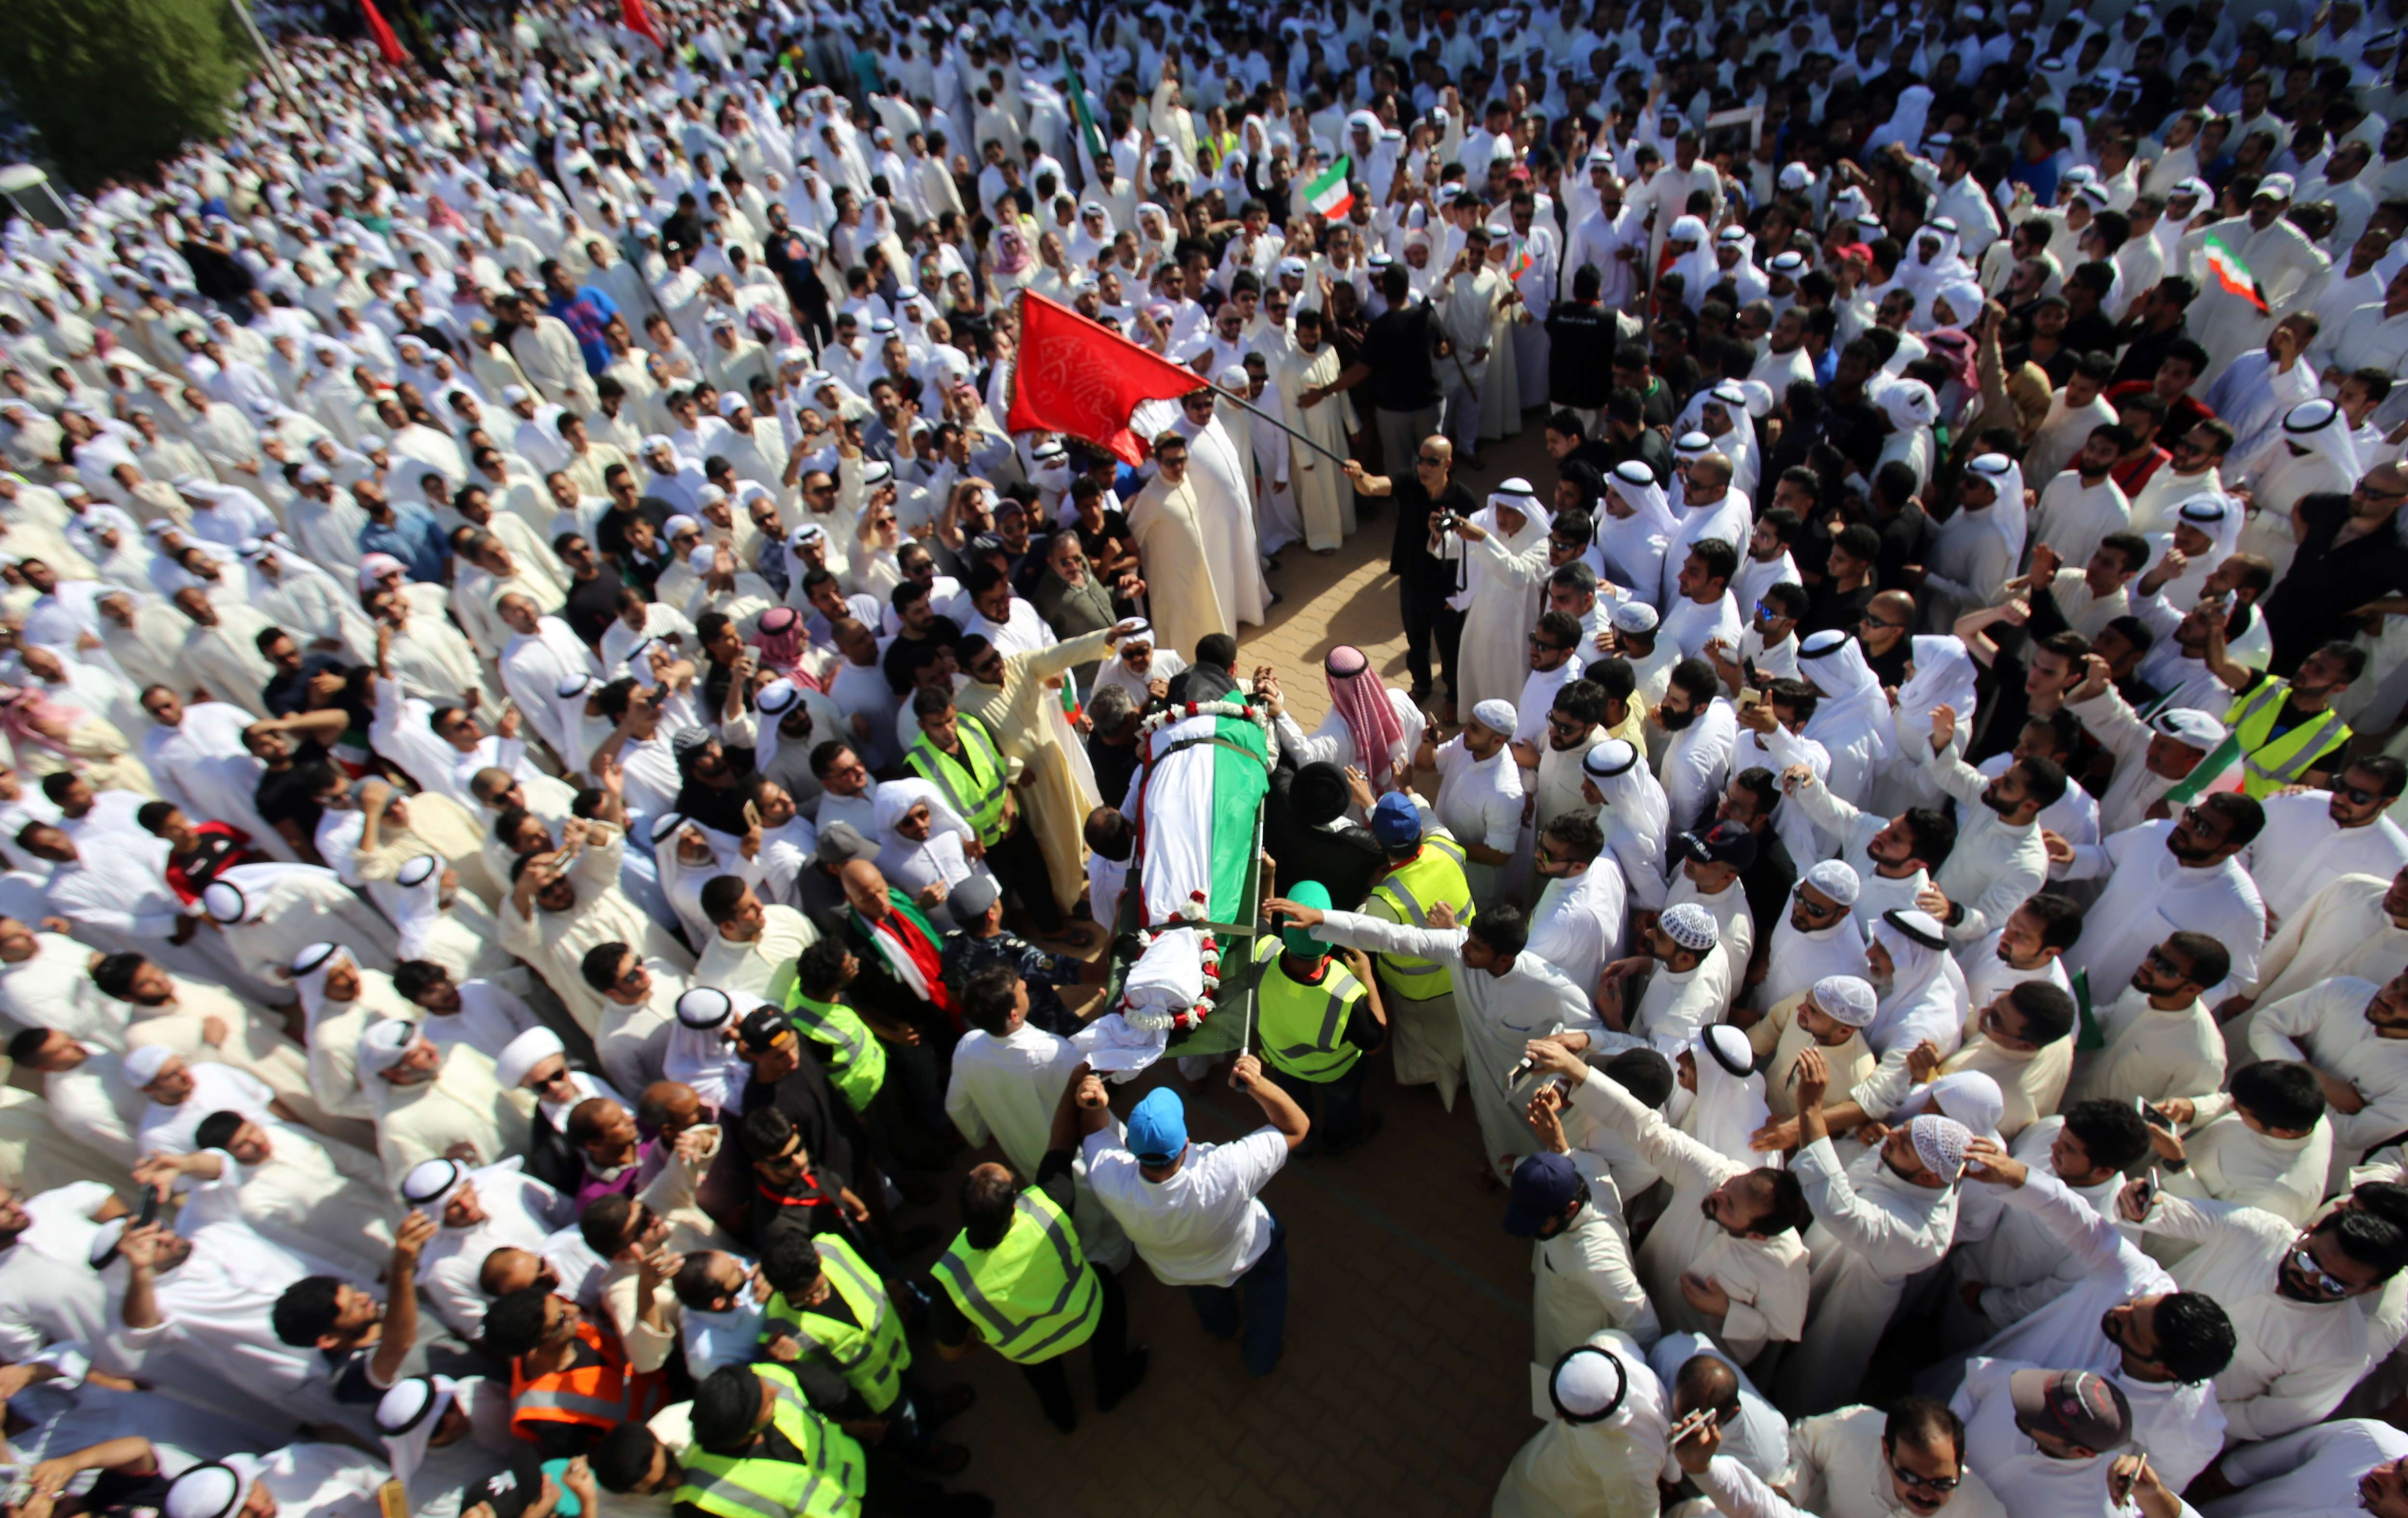 Mourners carry the body of one of the victims of the Al-Imam Al-Sadeq mosque bombing, during a mass funeral at Jaafari cemetery in Kuwait City on June 27, 2015. afp